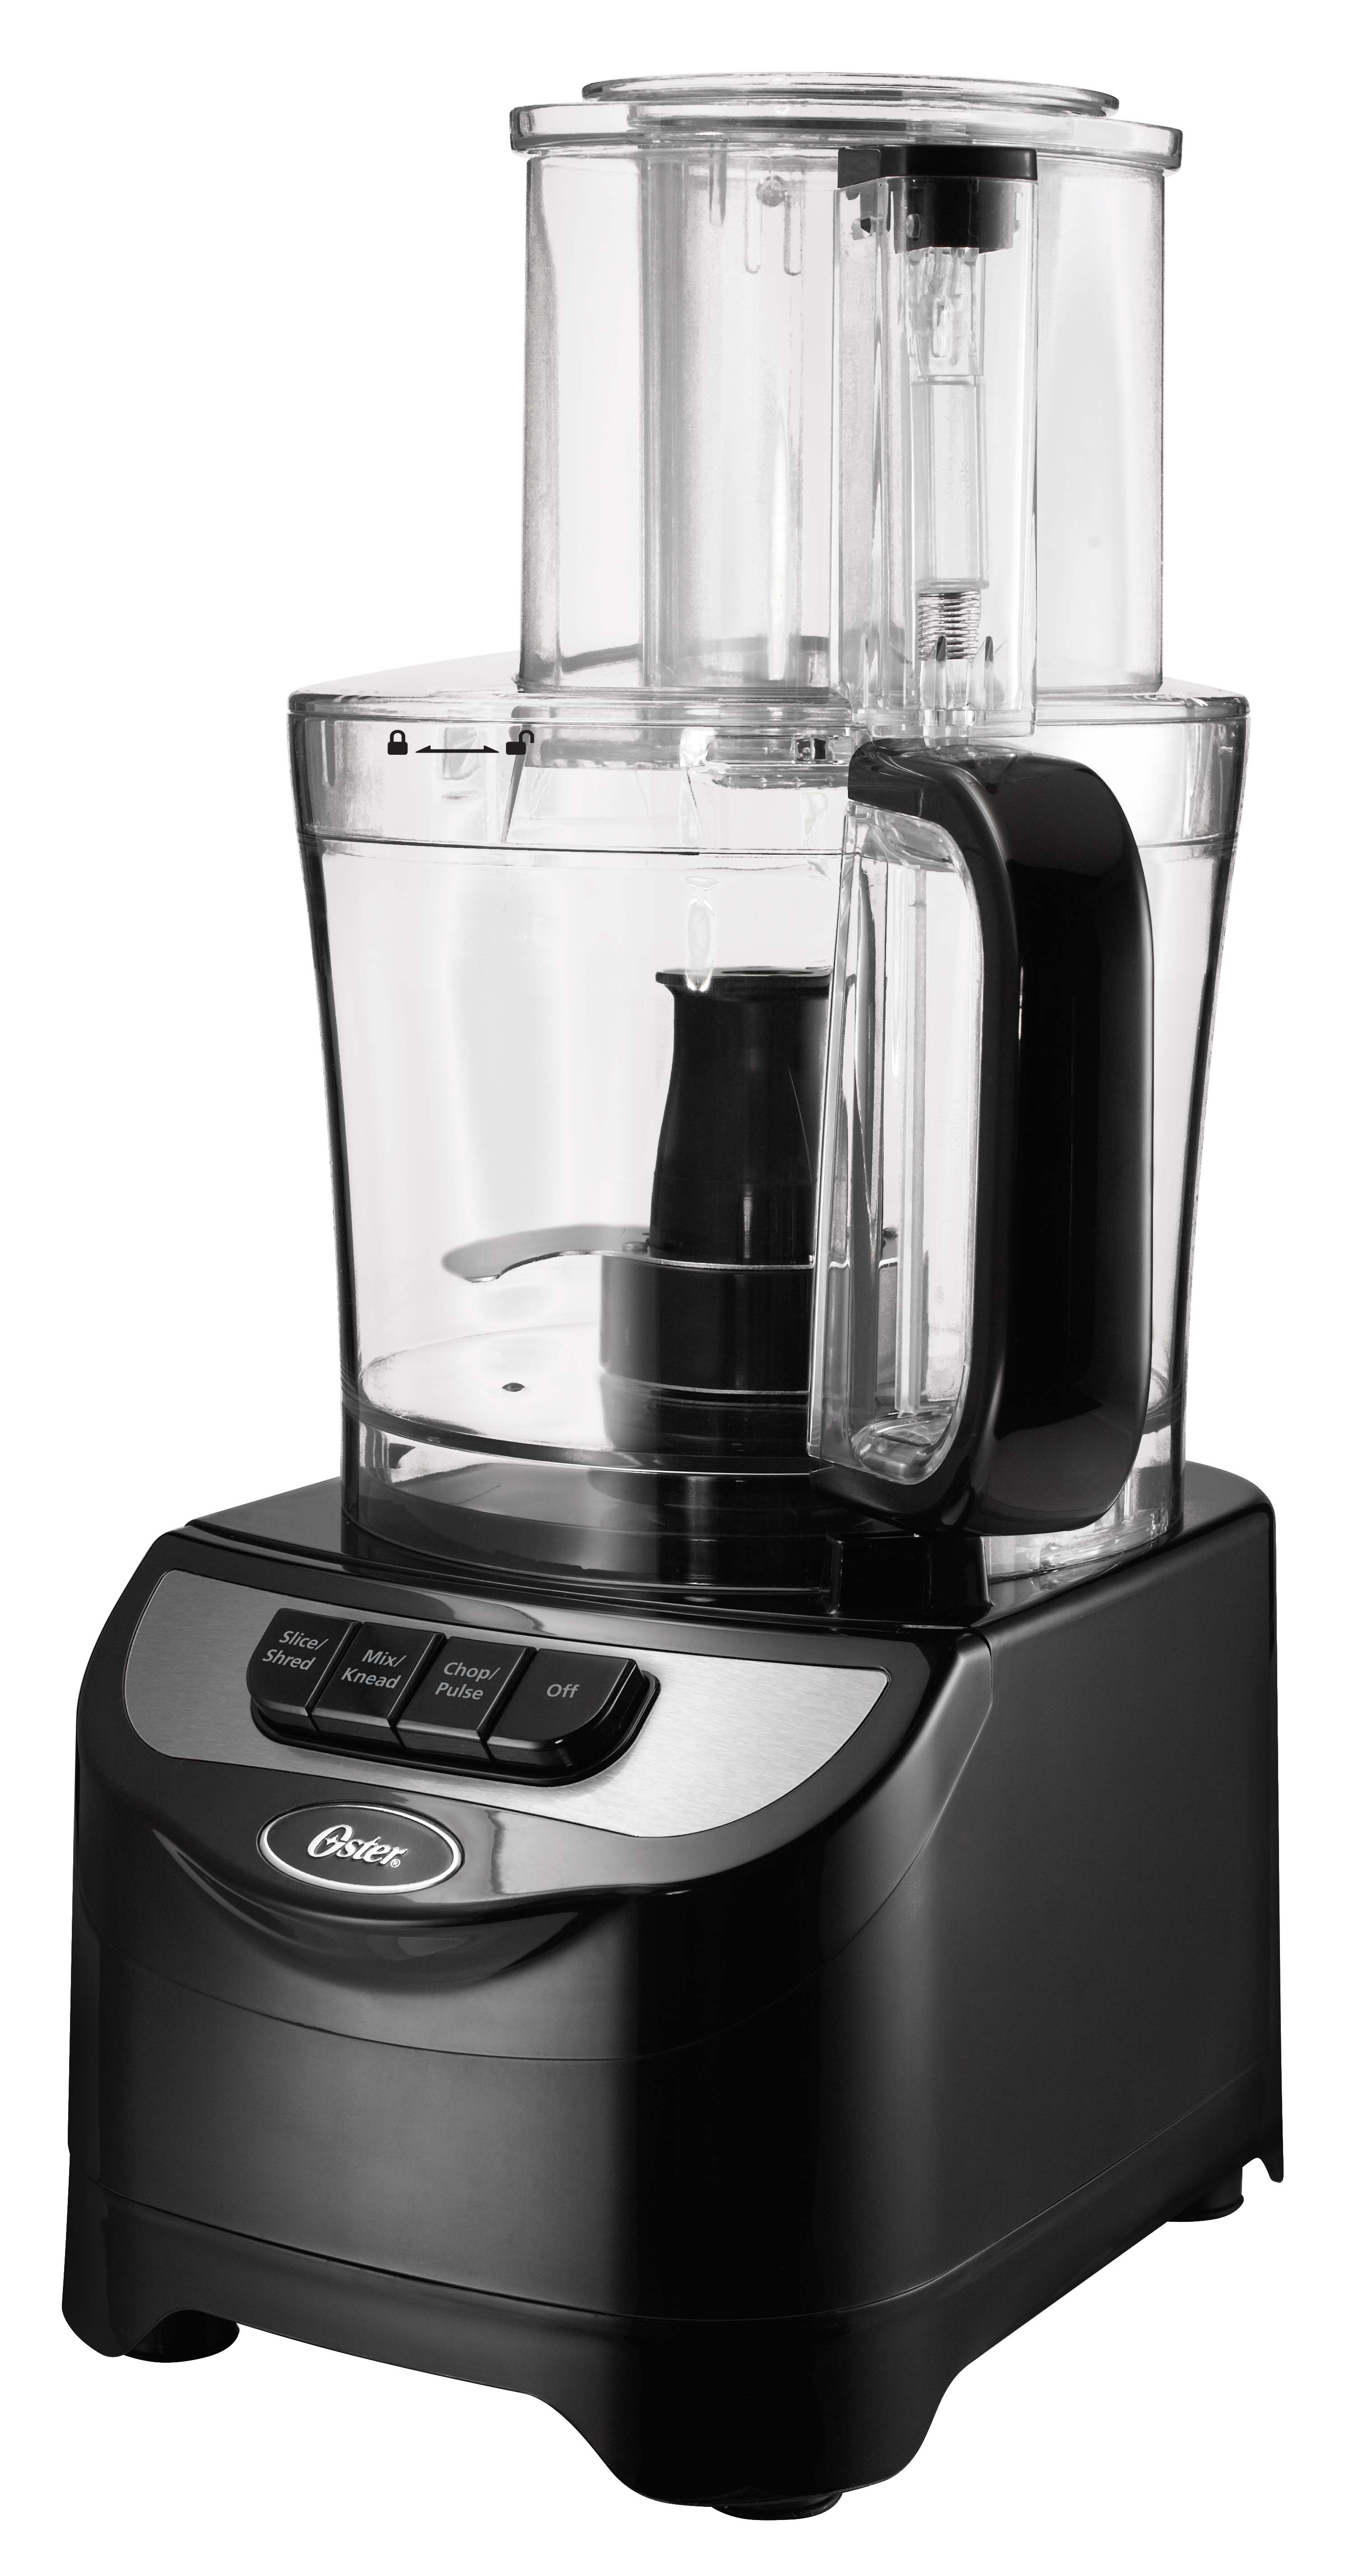 Oster 2 Speed 10 Cup Food Processor   500 Watts